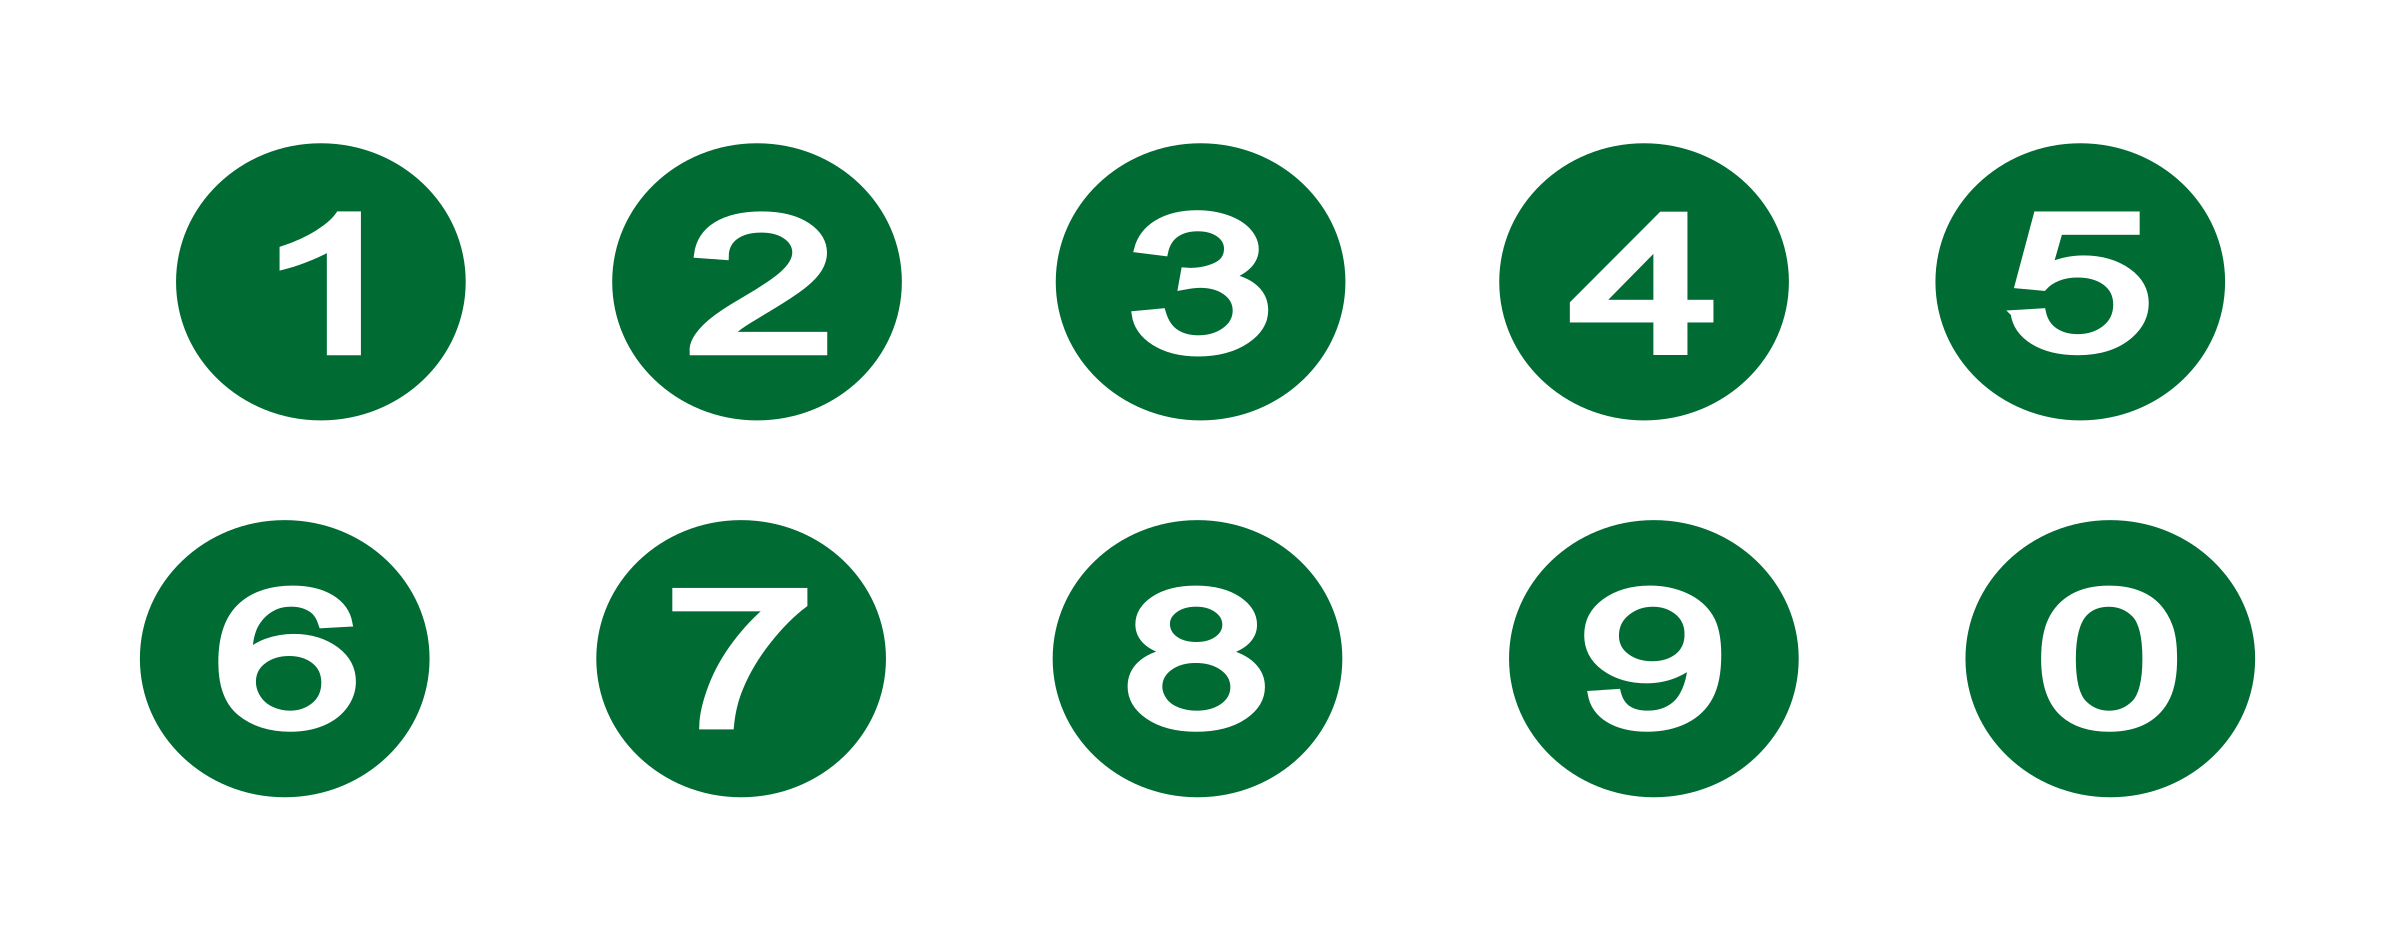 Numbers in circles png. Collection of clipart